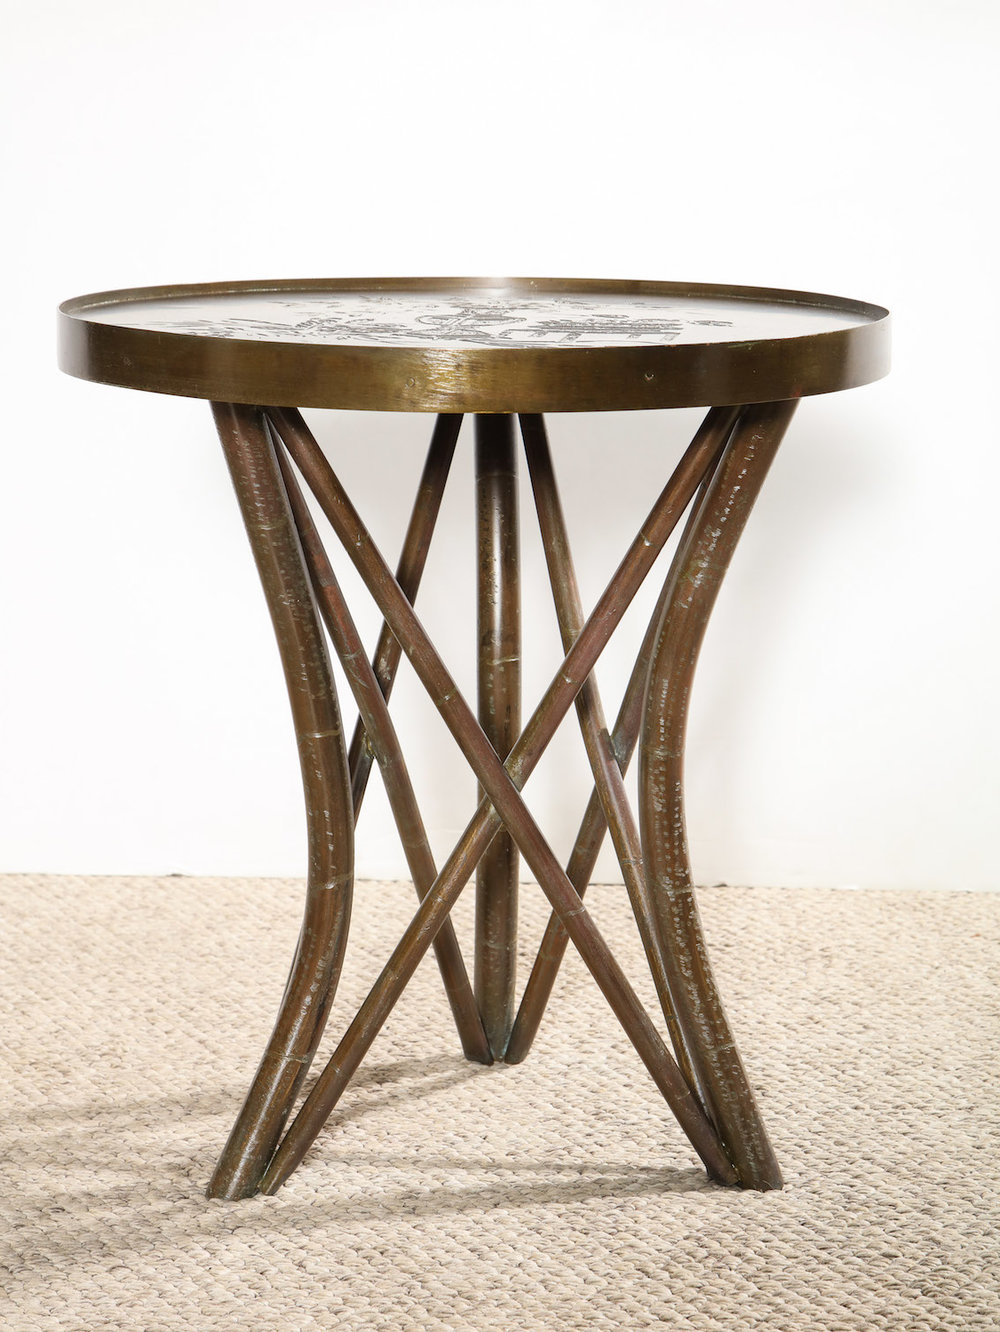 All Products — Donzella Inside Mix Leather Imprint Metal Frame Console Tables (View 1 of 20)